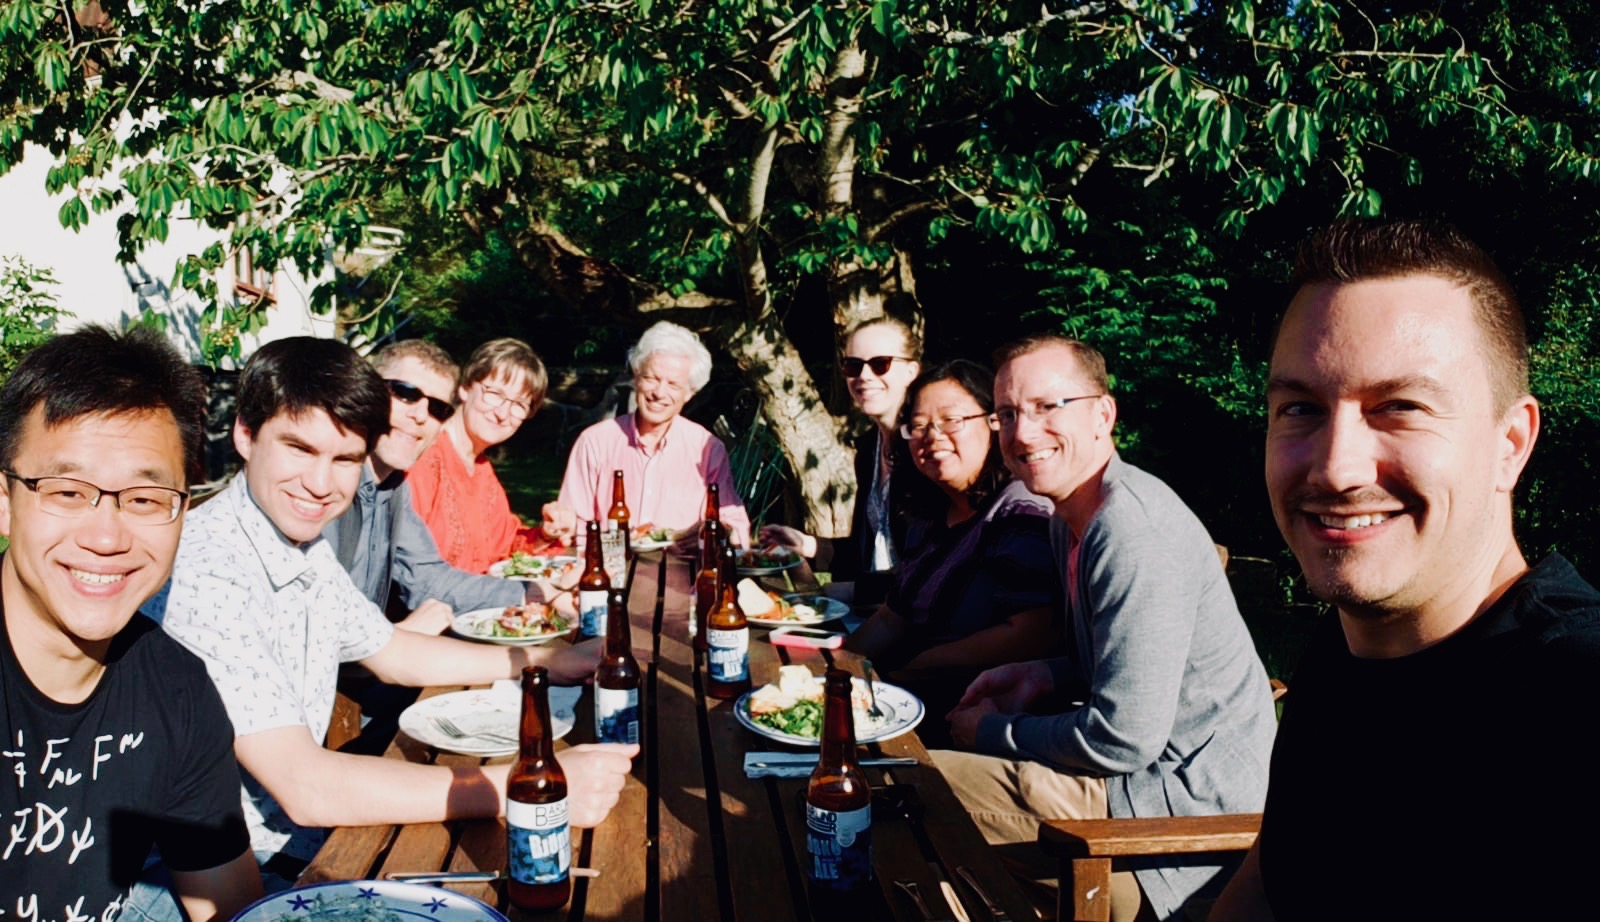 Members of Boston Organ Studio, with Hans and Ulrika Davidsson, enjoying an evening meal in the garden.